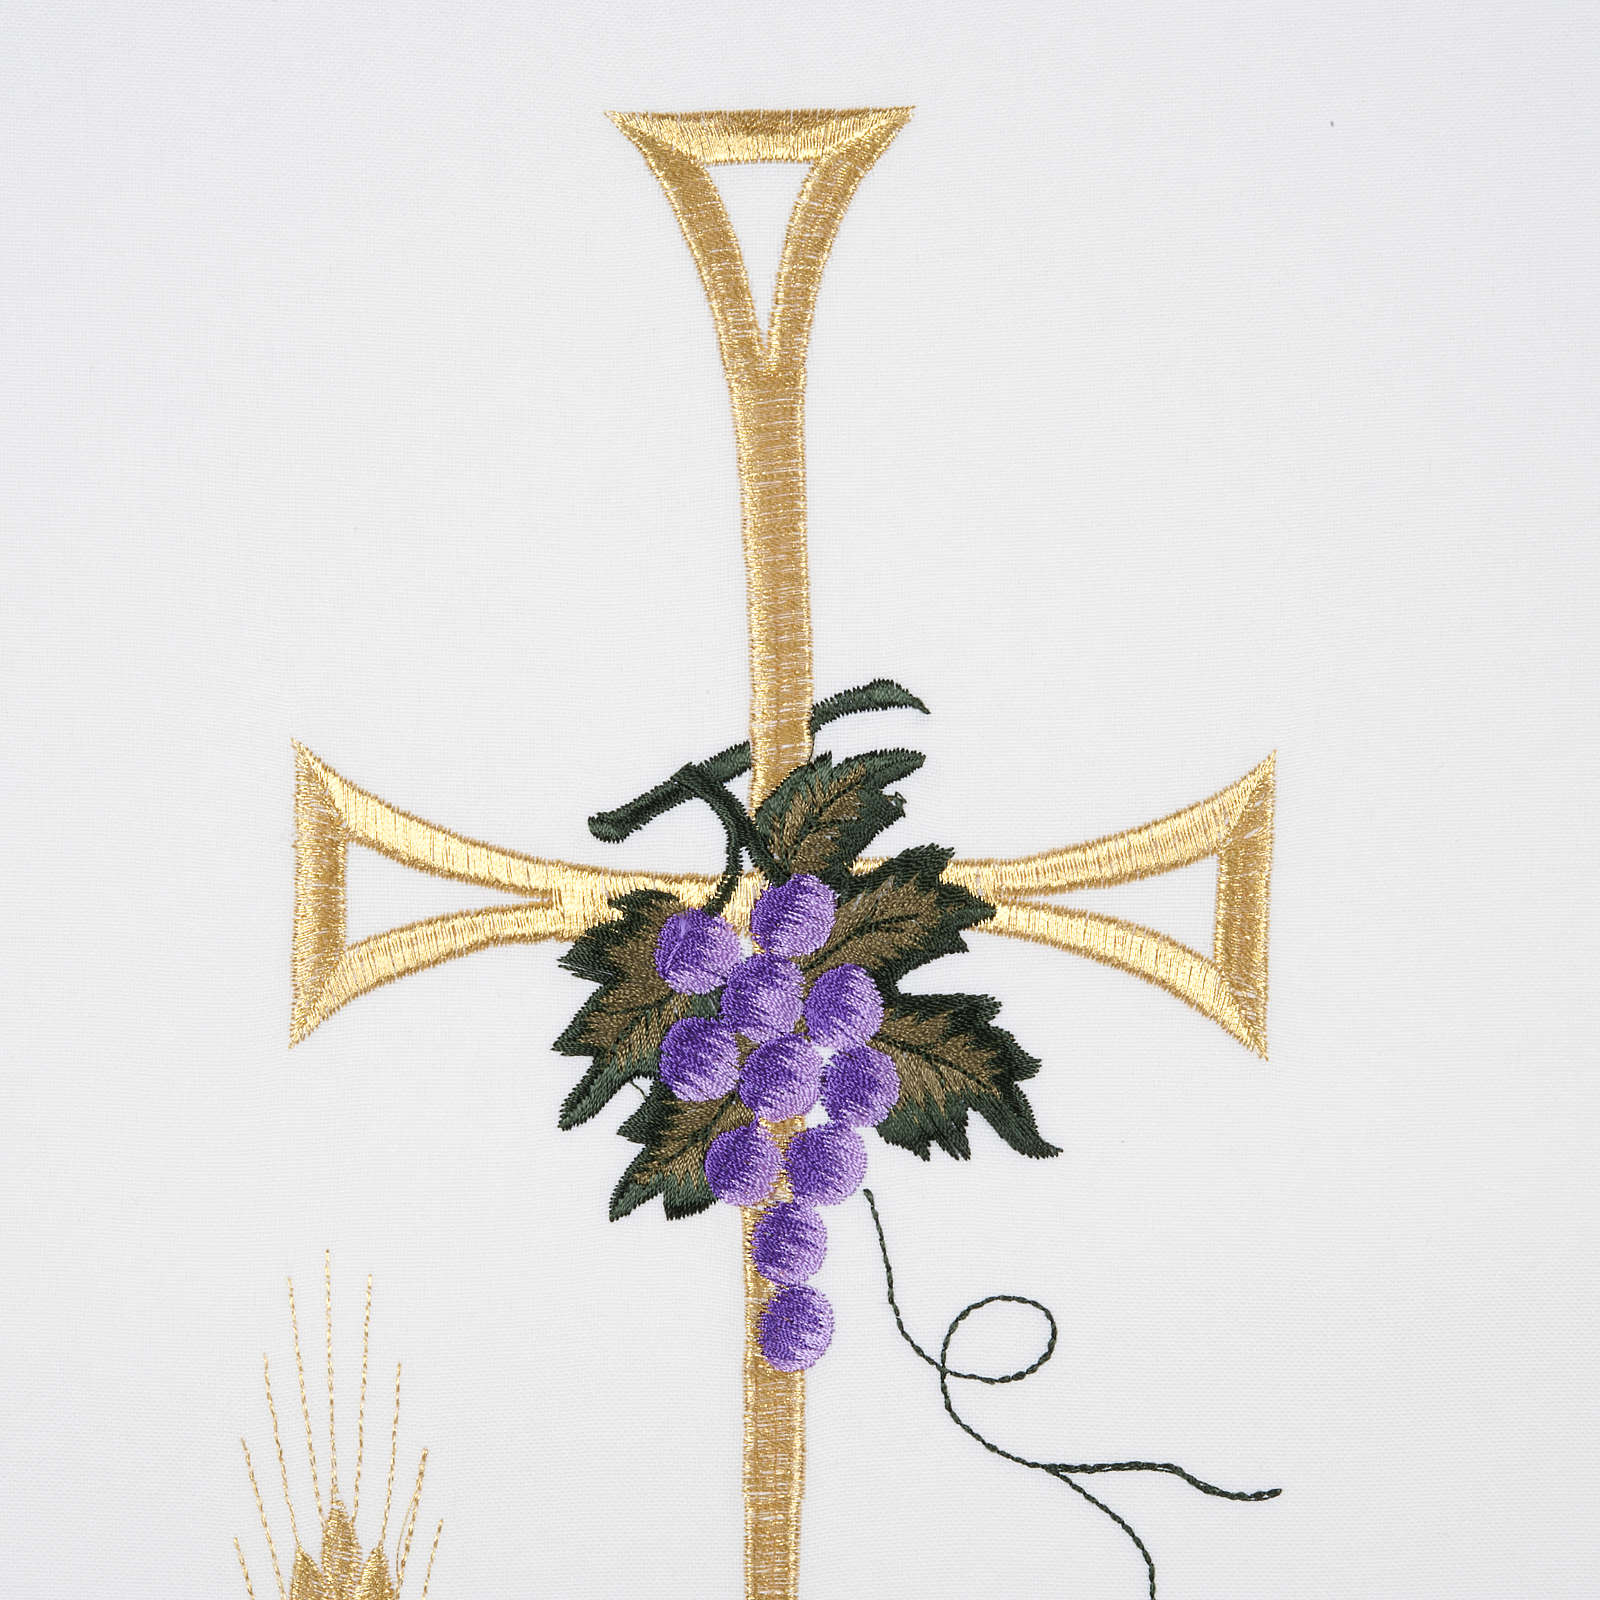 Lamp, grapes, wheat, cross pulpit cover in all liturgical colors 4